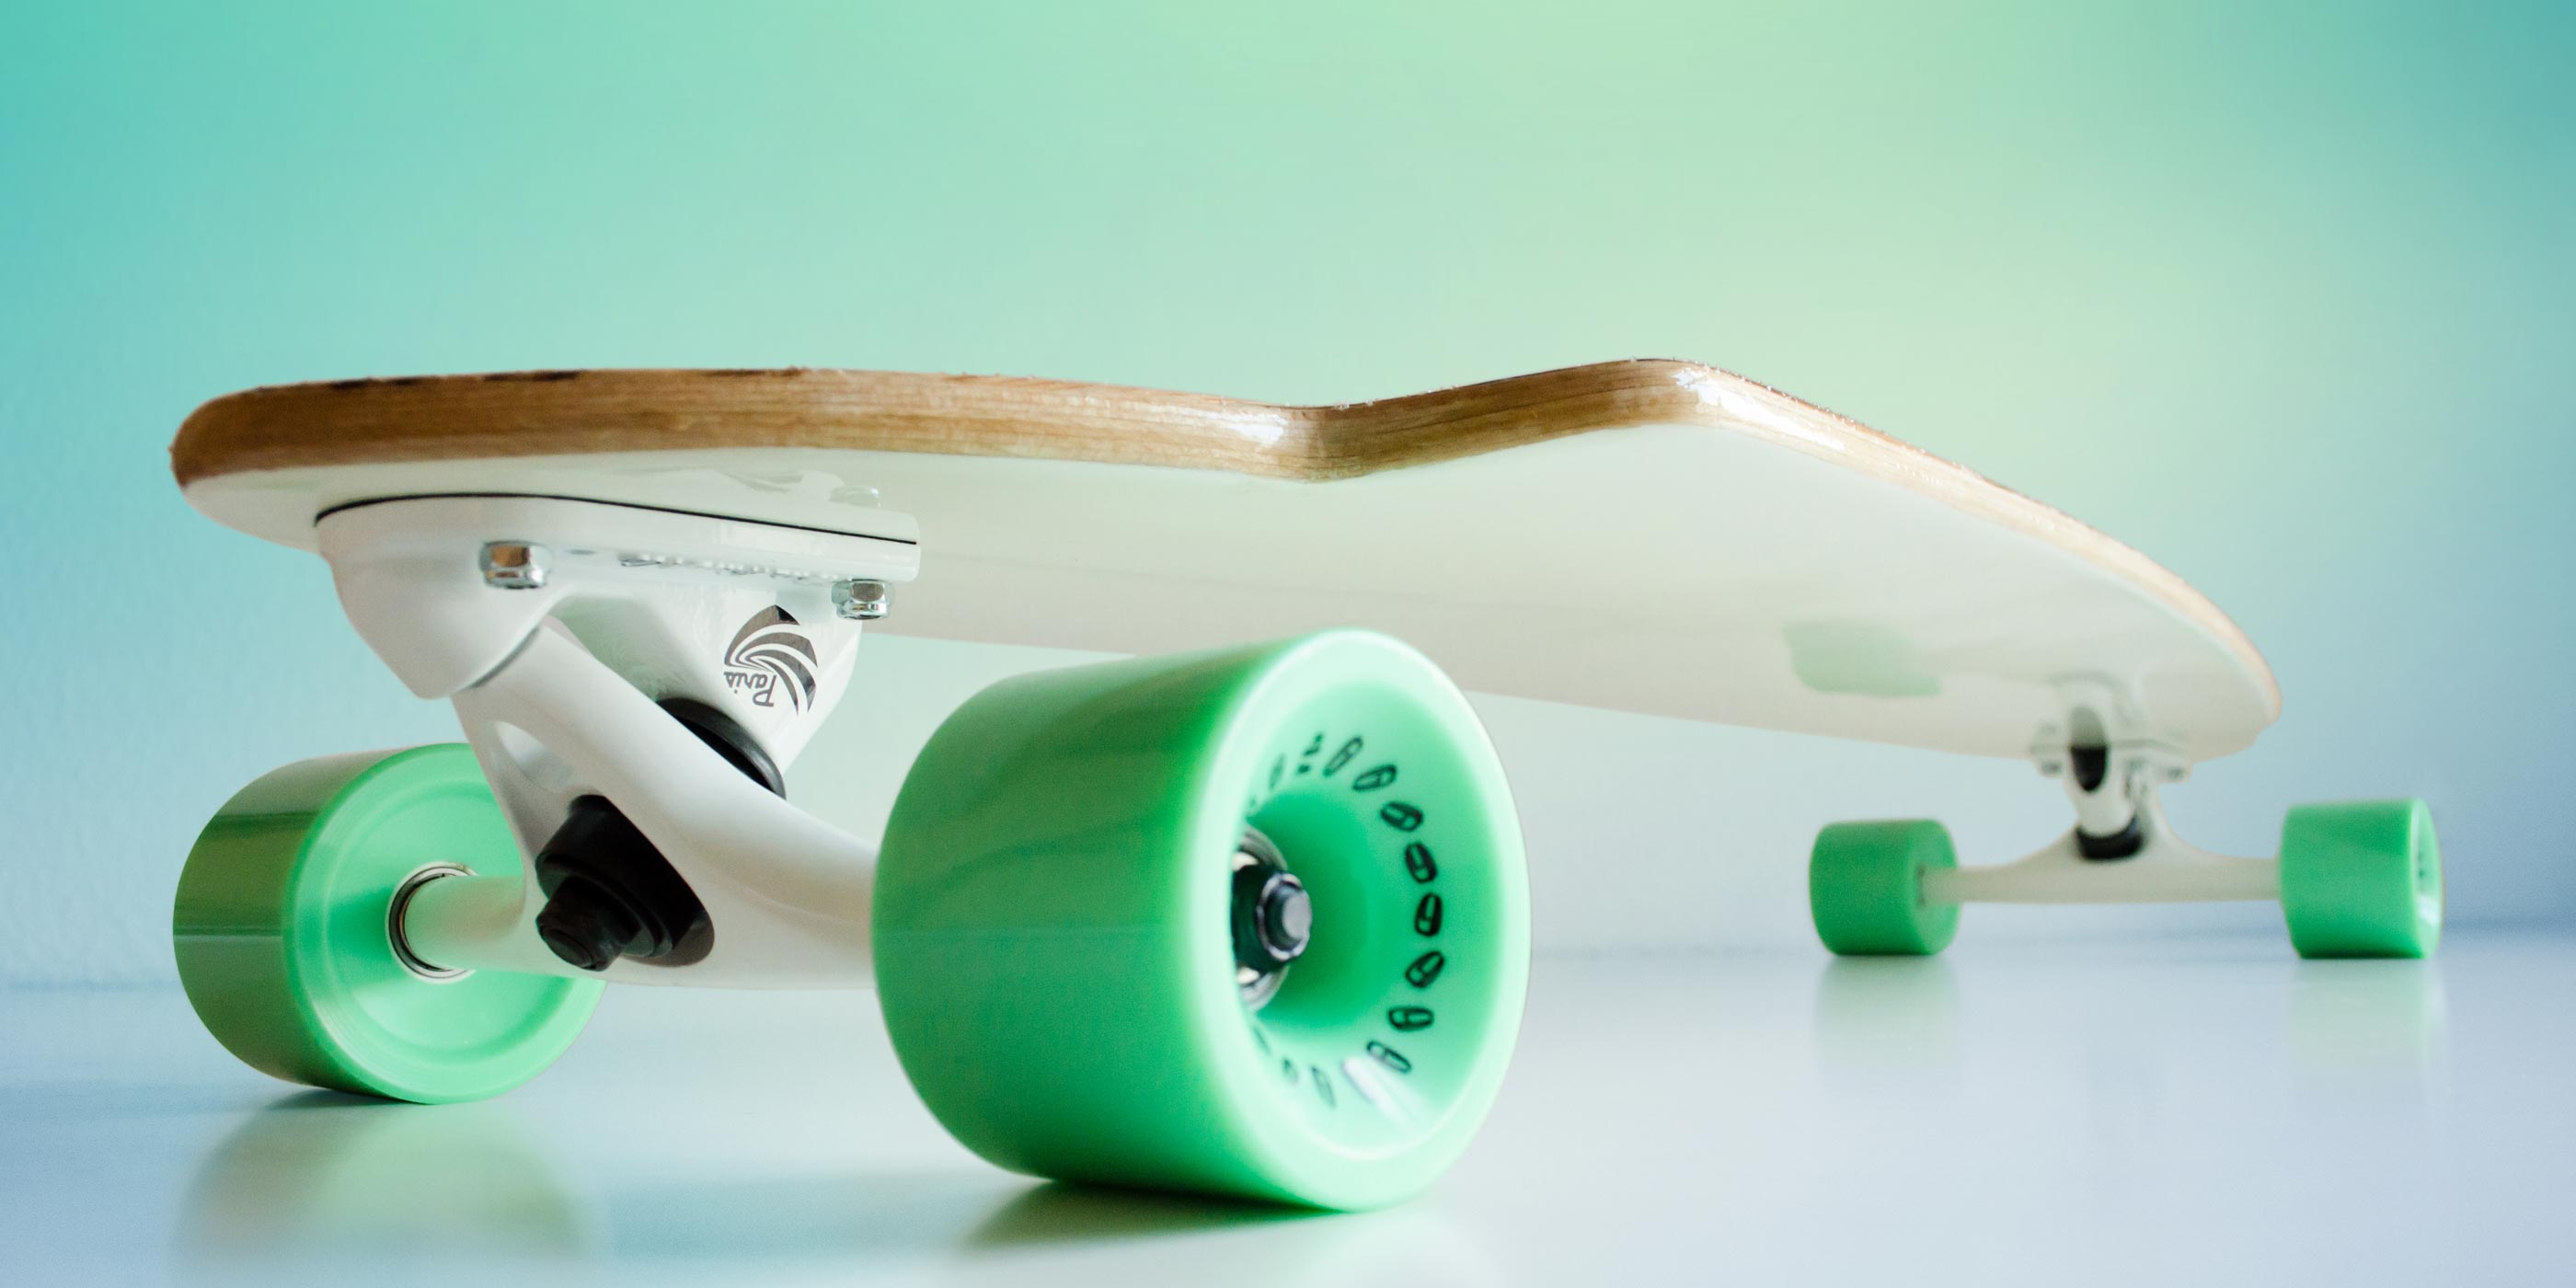 Longboard by WACH designstudio with Zebrano Deck, white bottom, Paris Trucks and turquoise Olson&Hekmati wheels